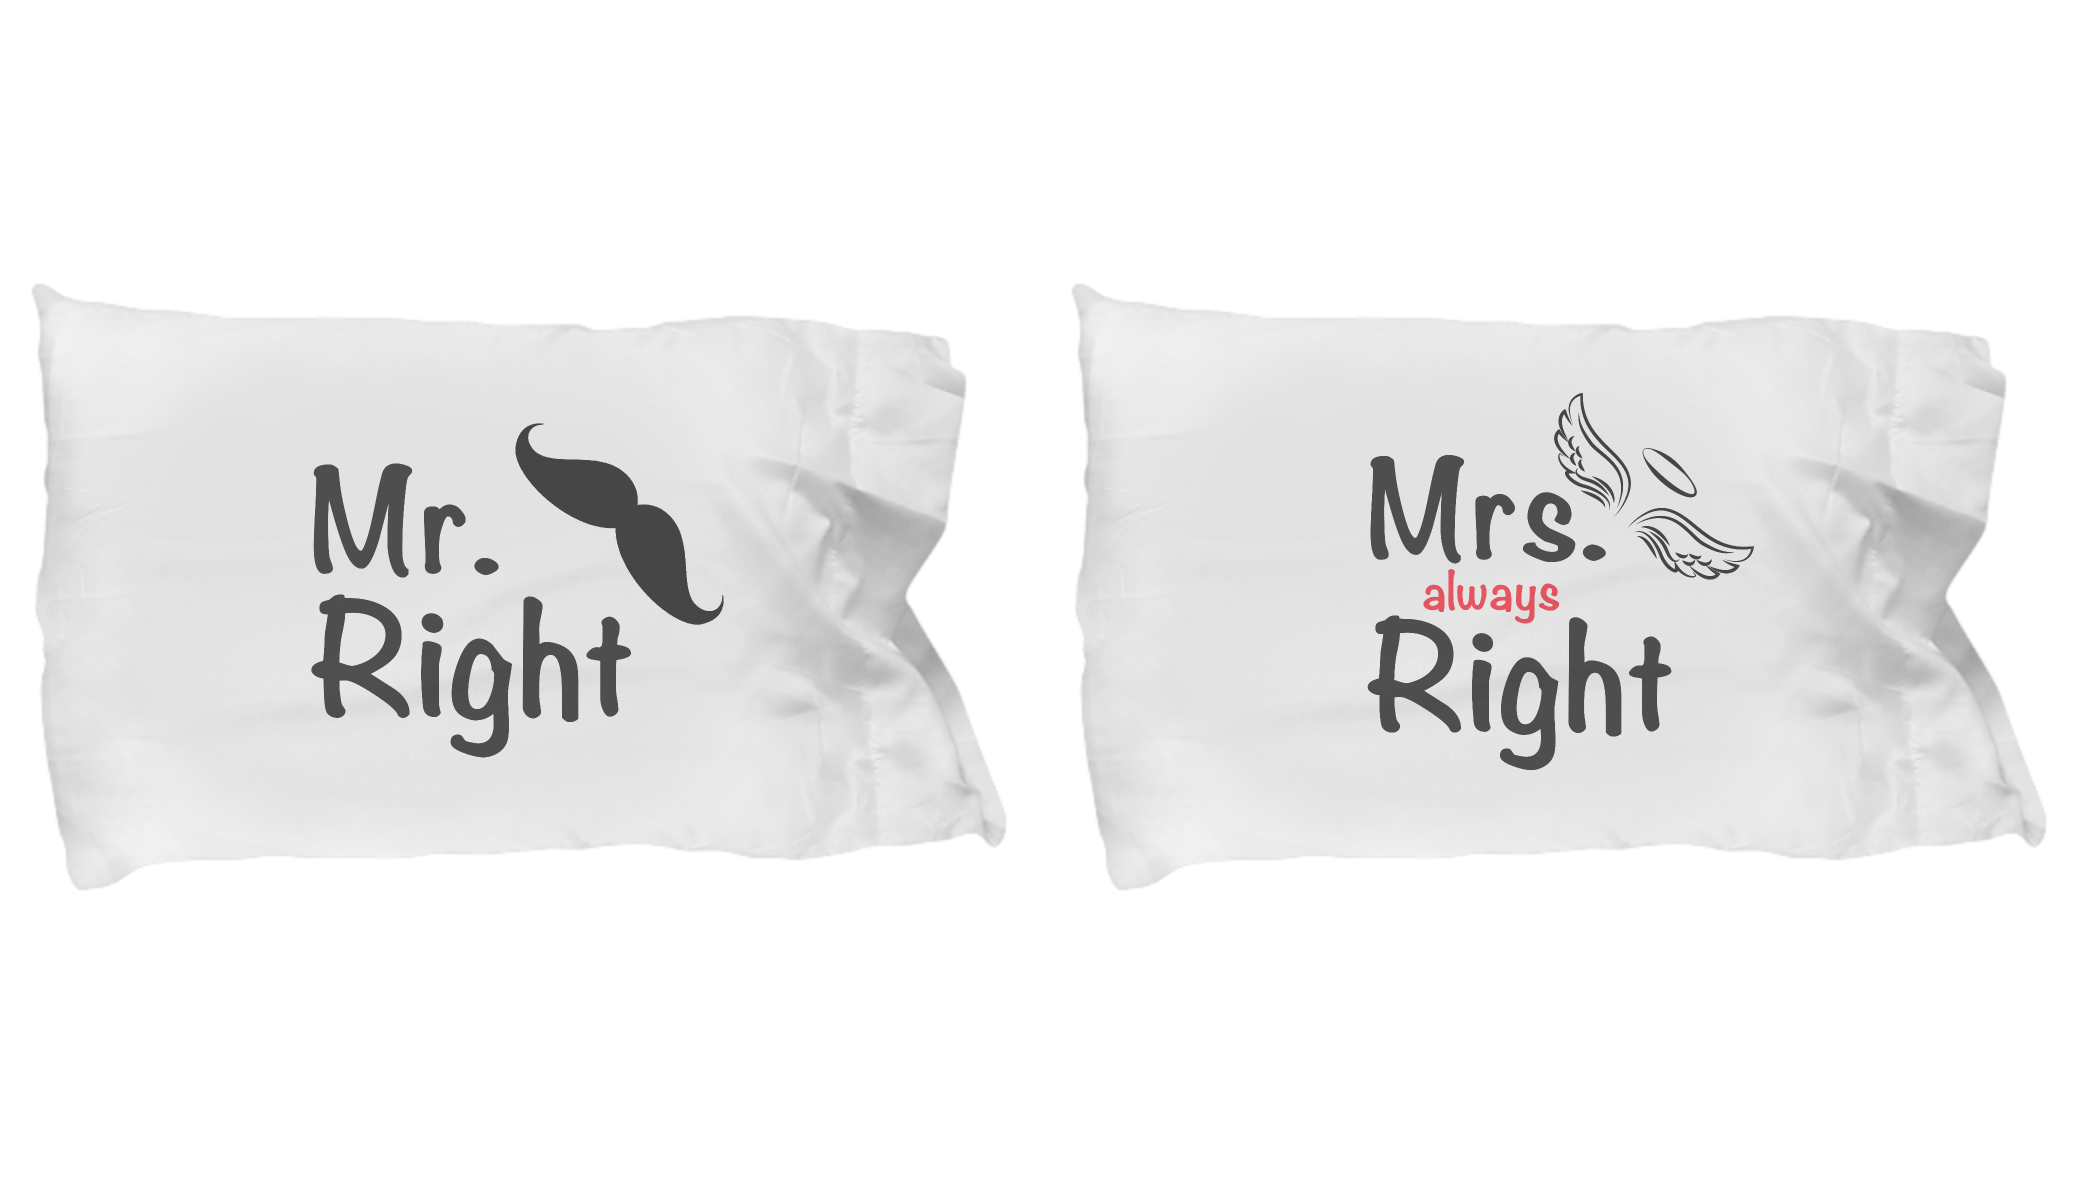 Mr Right Mrs Right Bettwäsche Mr Right Mrs Always Right Pajamas